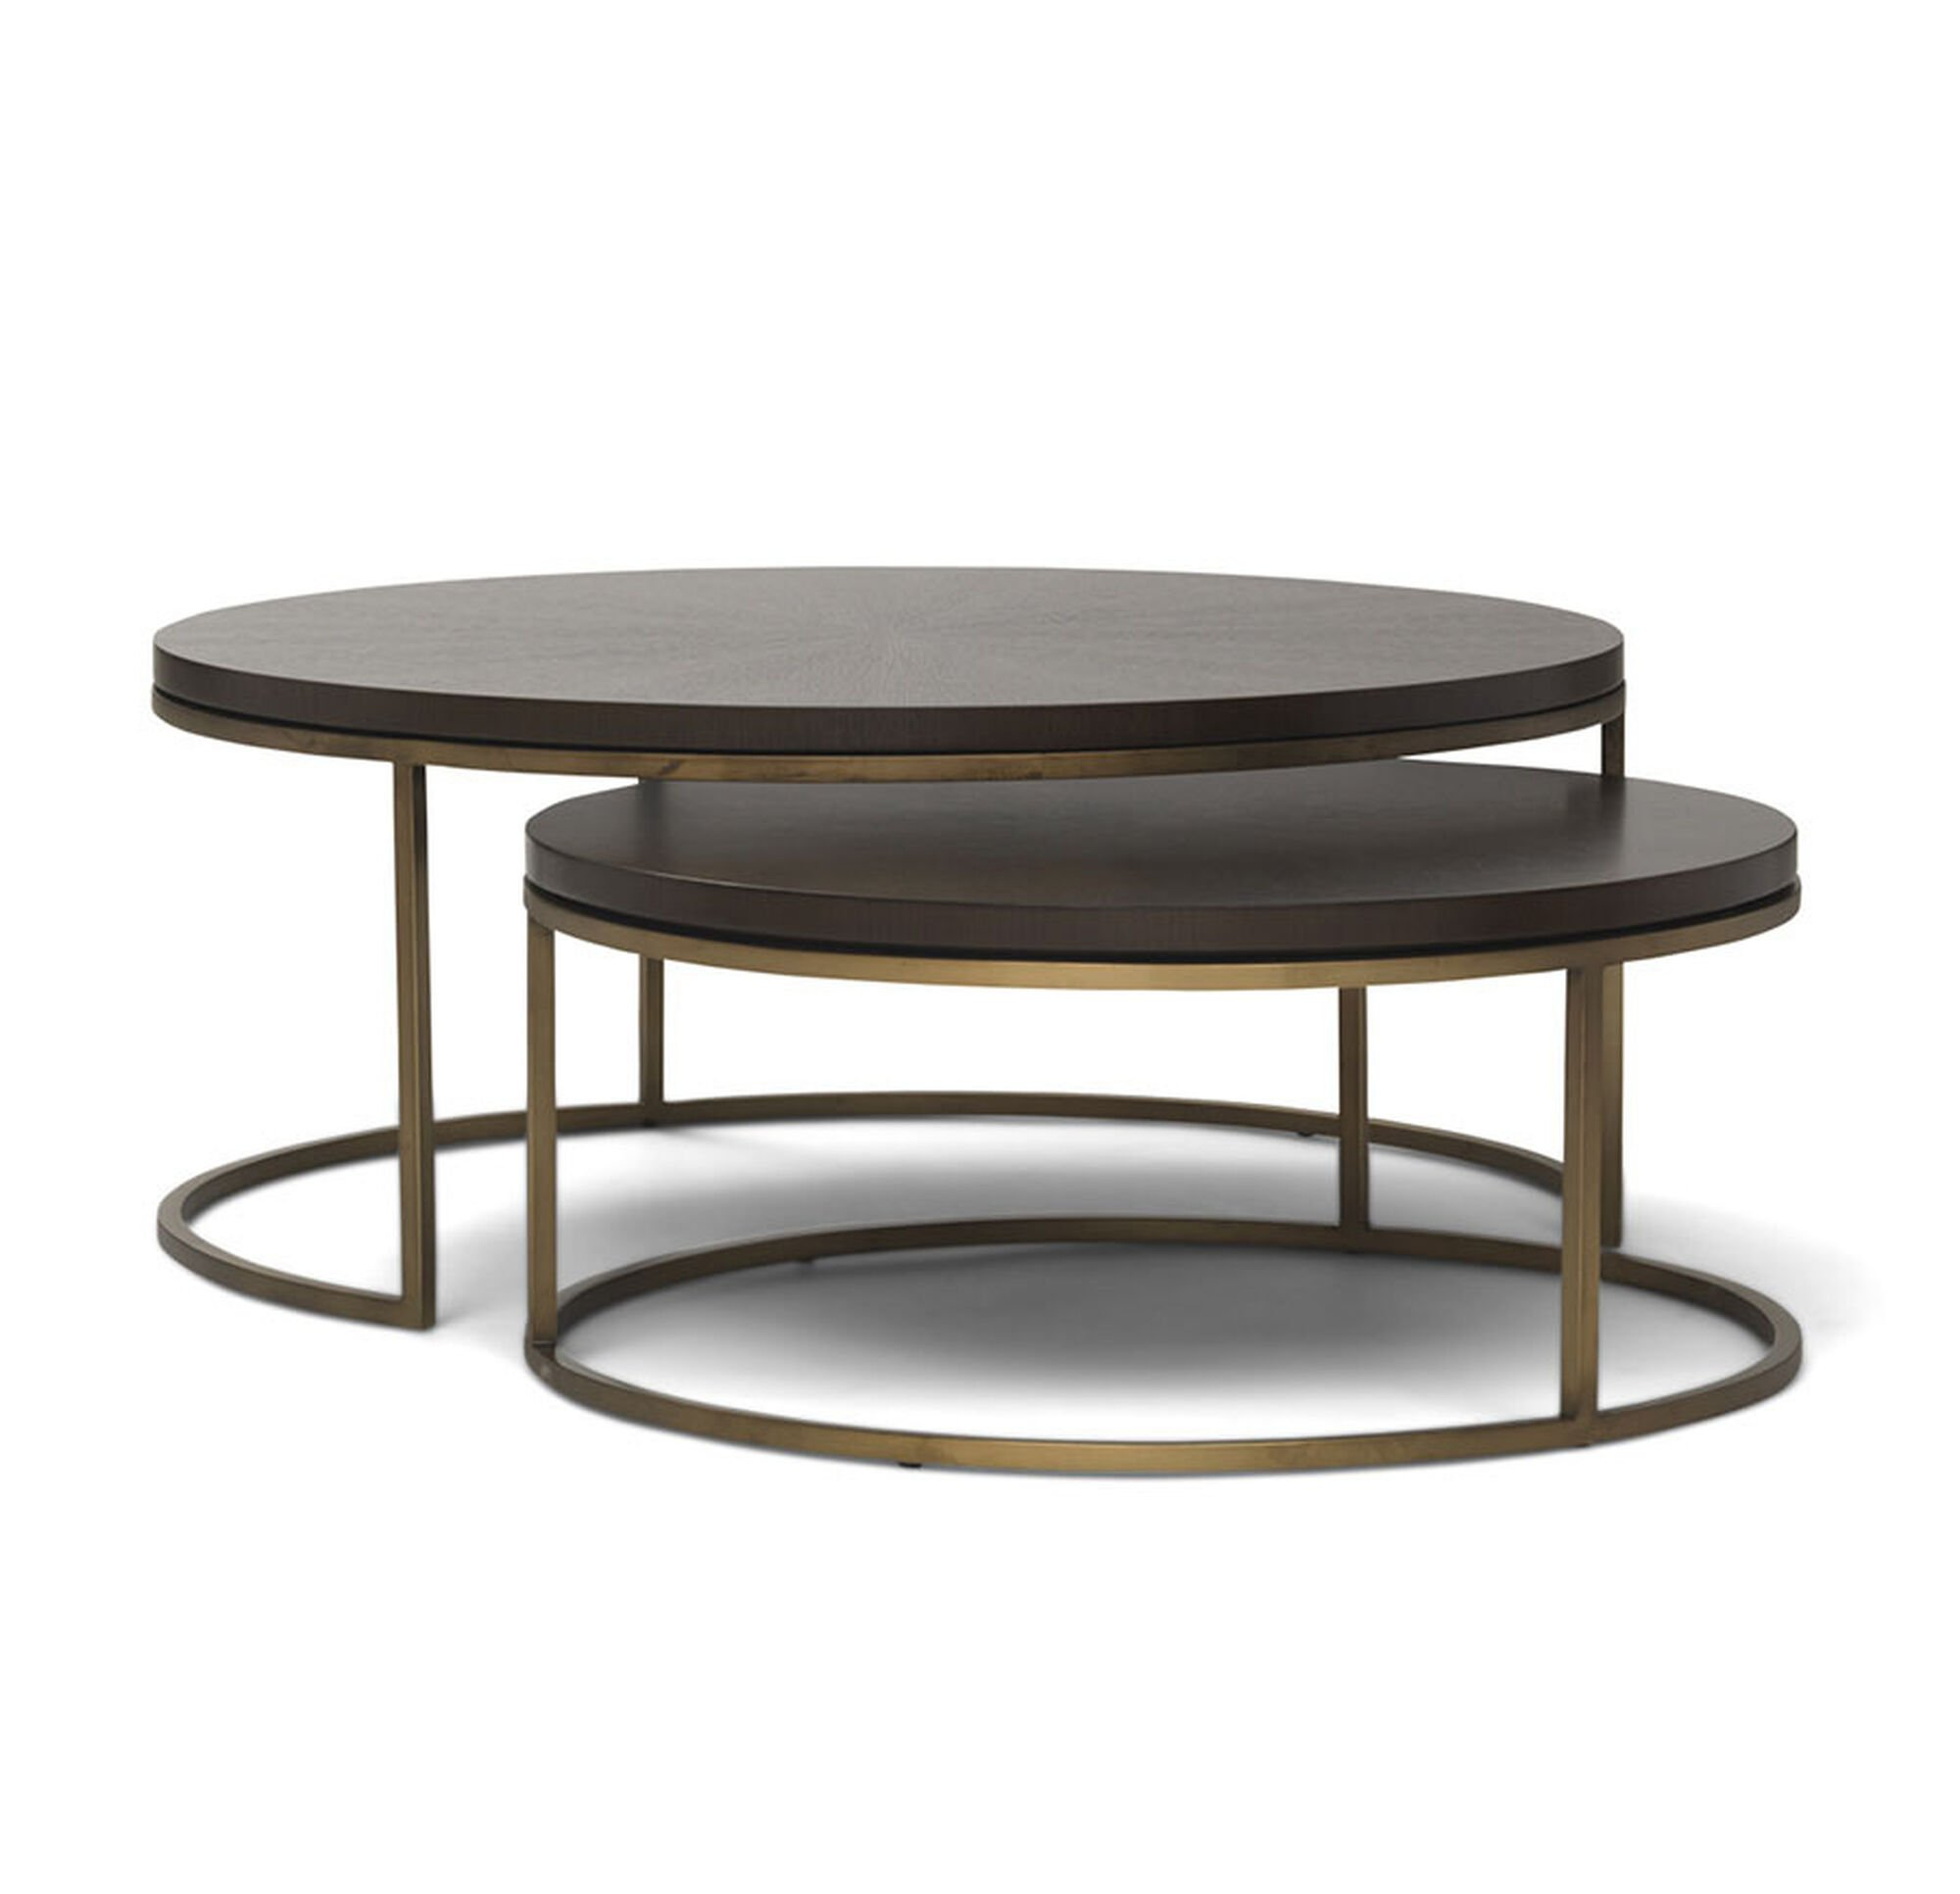 BASSEY NESTING COCKTAIL TABLE - Nesting table with drawer